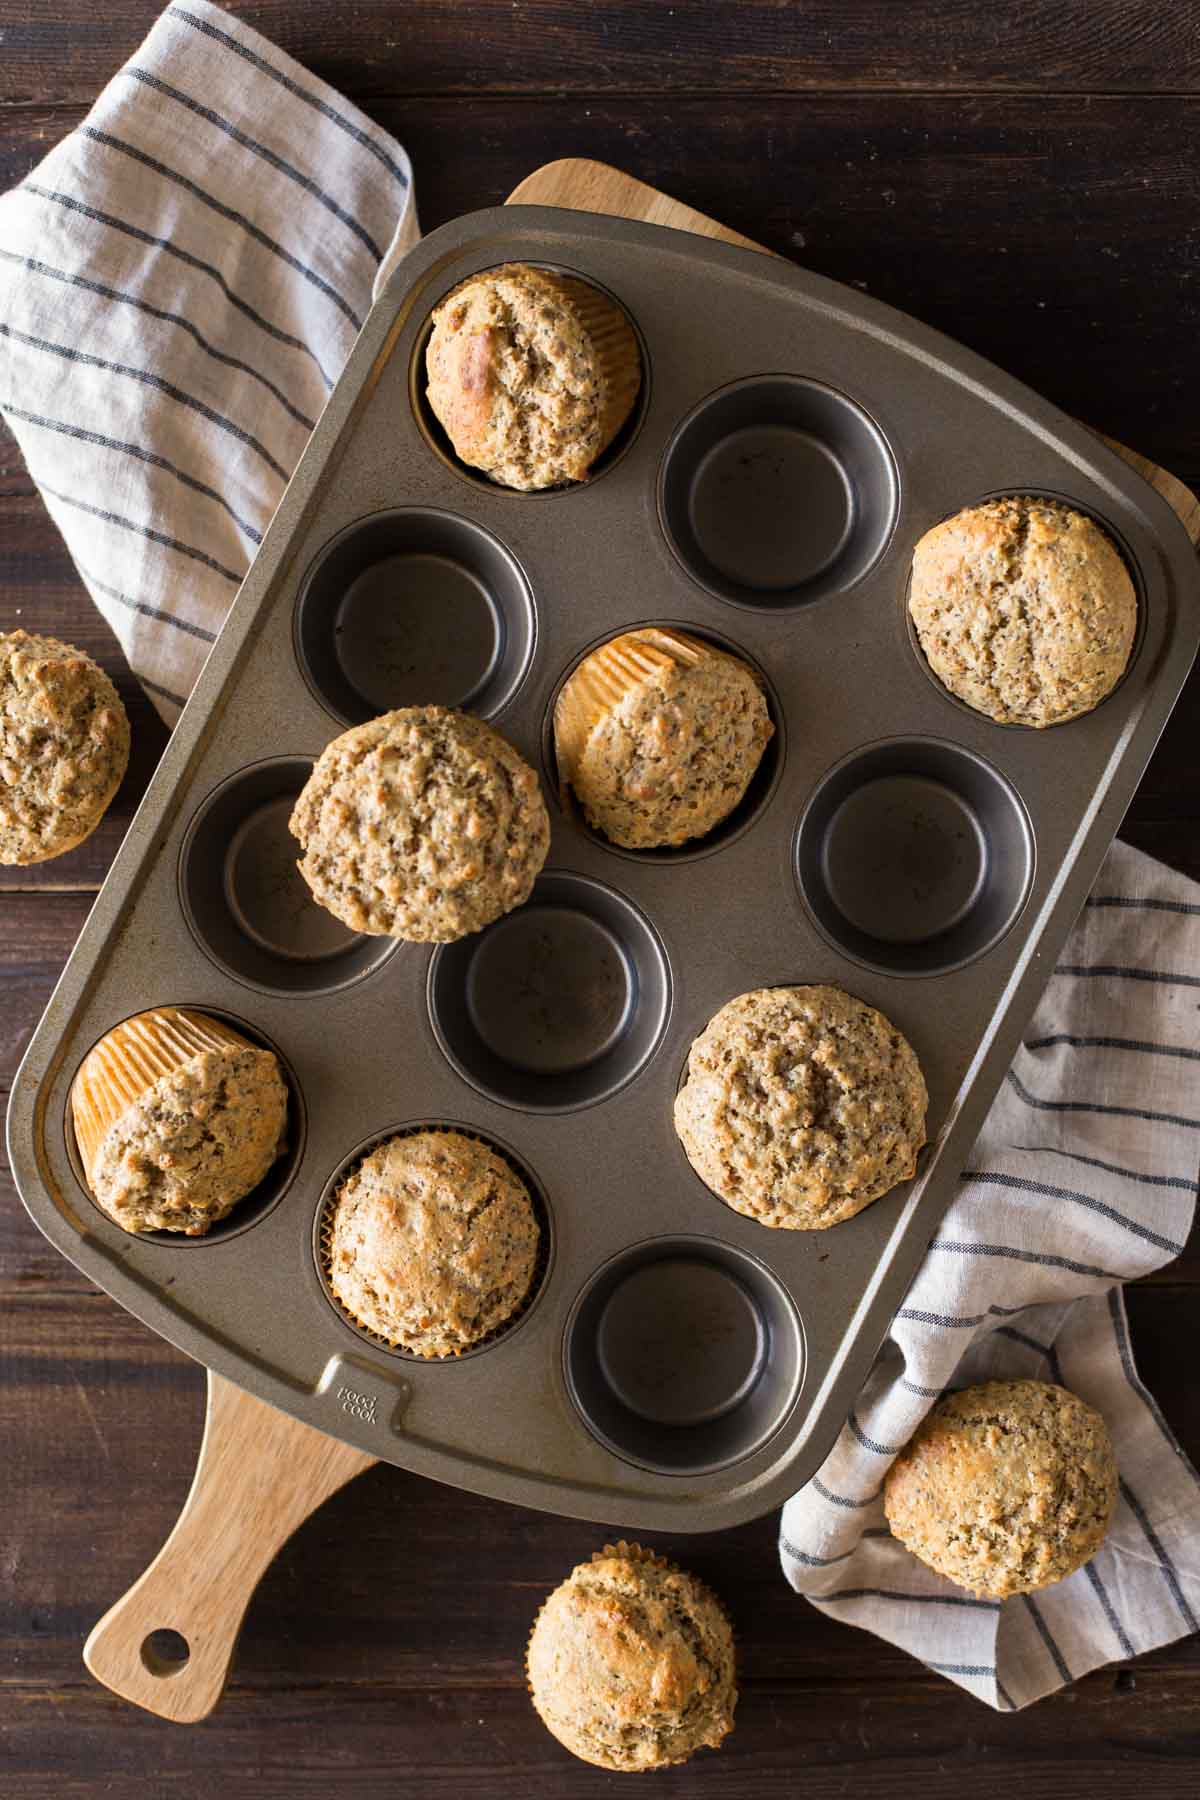 Honey Bran Muffins in, on and around a muffin pan.